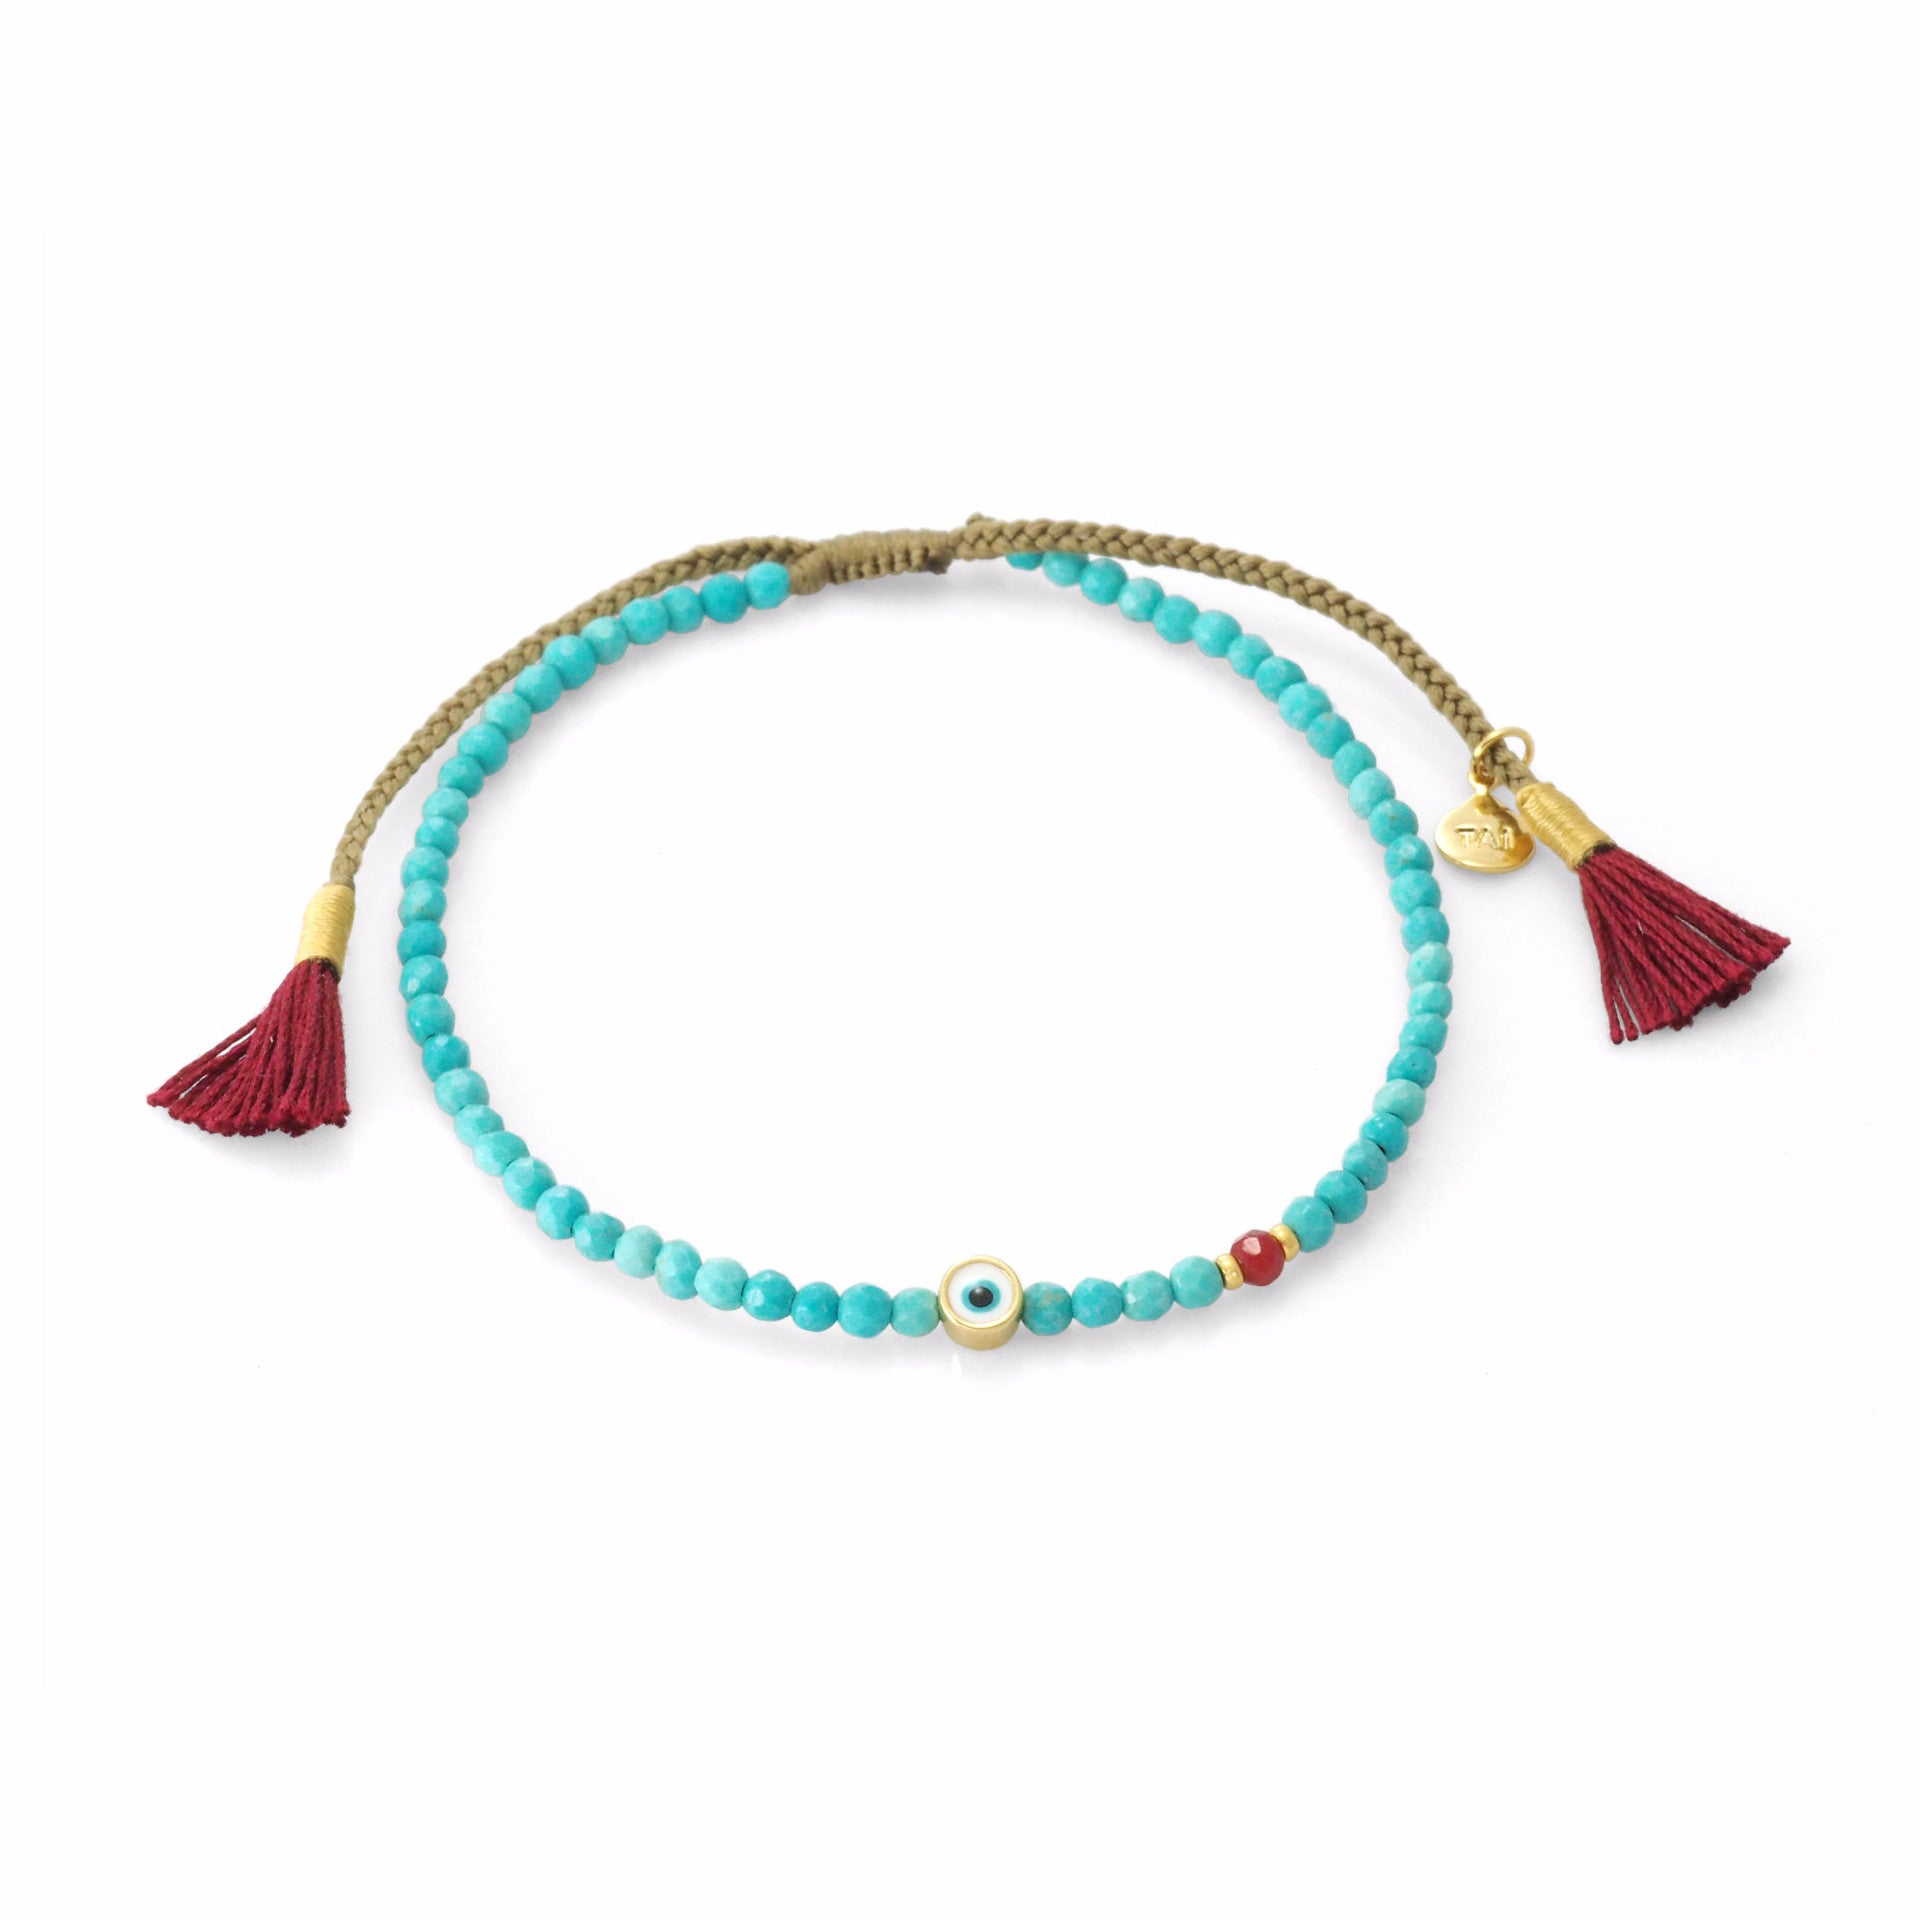 BEADED BRACELET WITH ROUND ENAMEL EVIL EYE CHARM